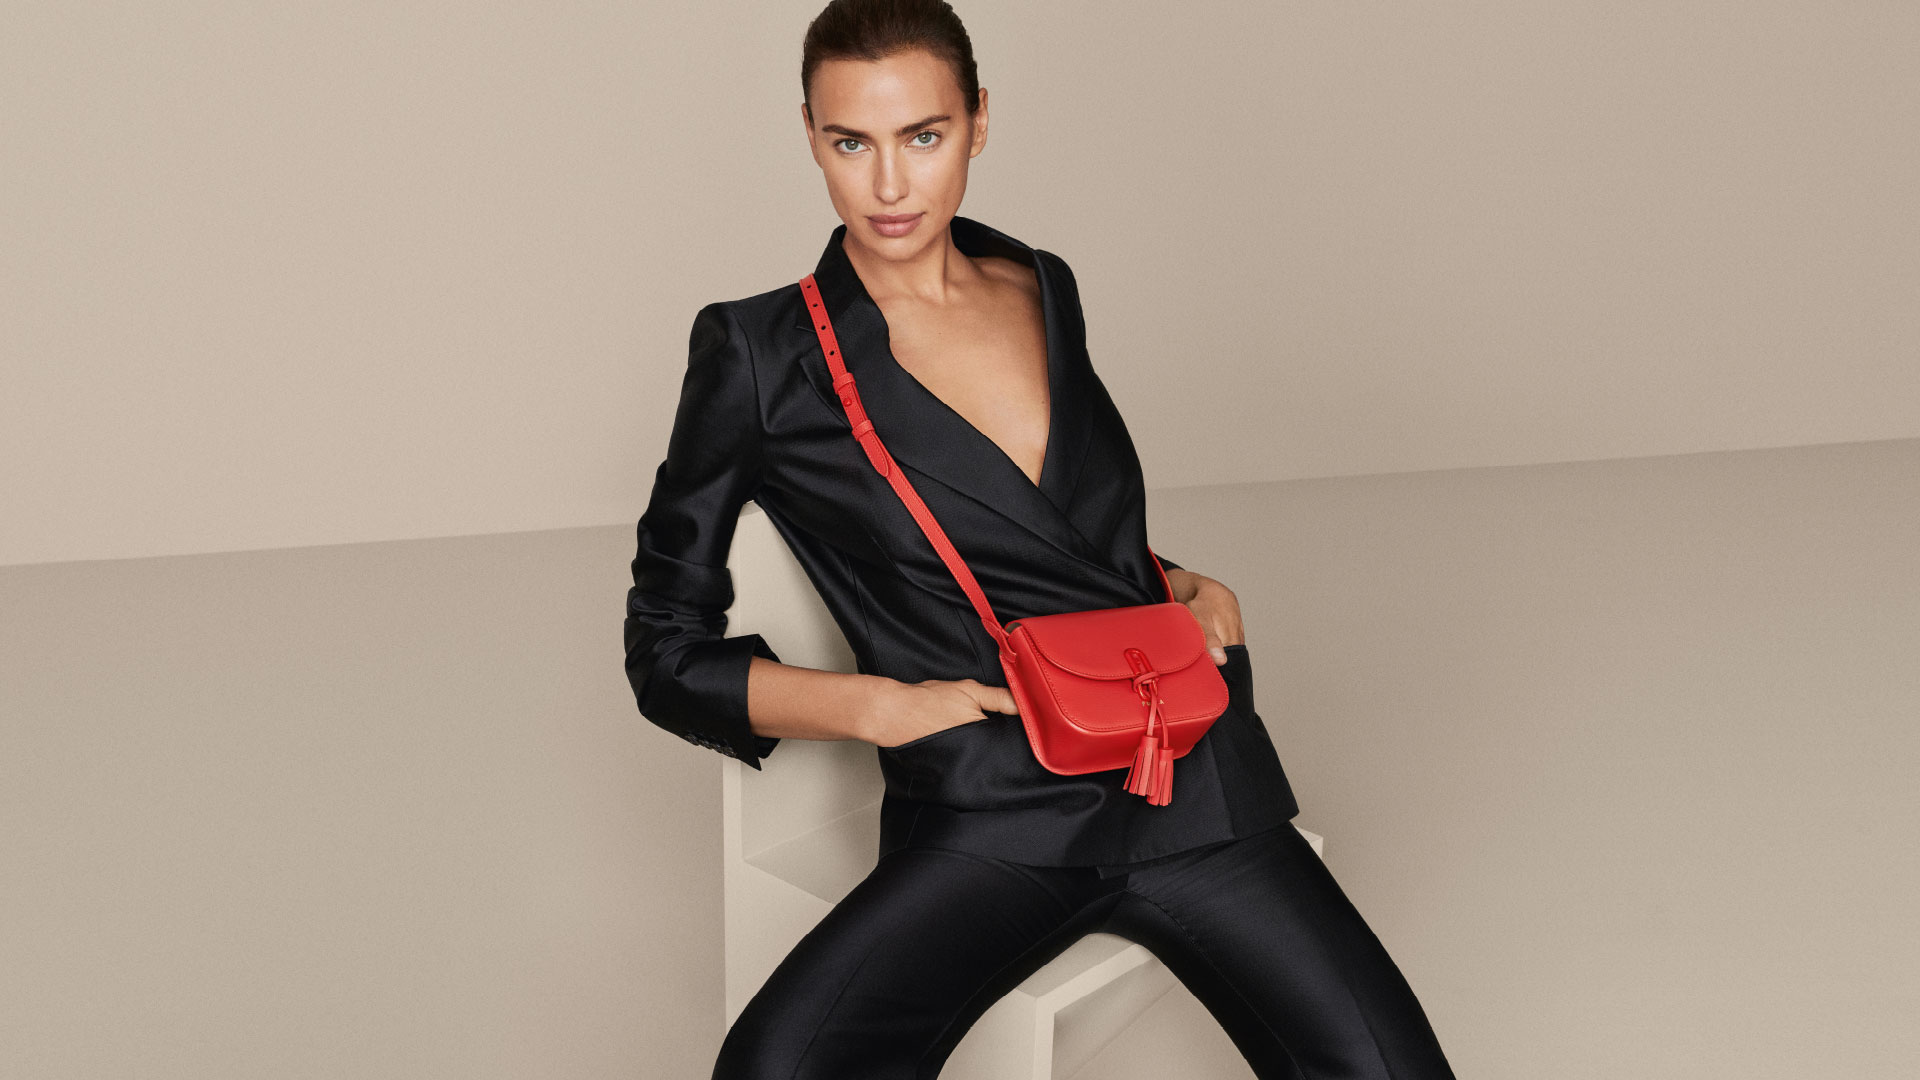 Irina Shayk collaboration with Furla wearing a red bag